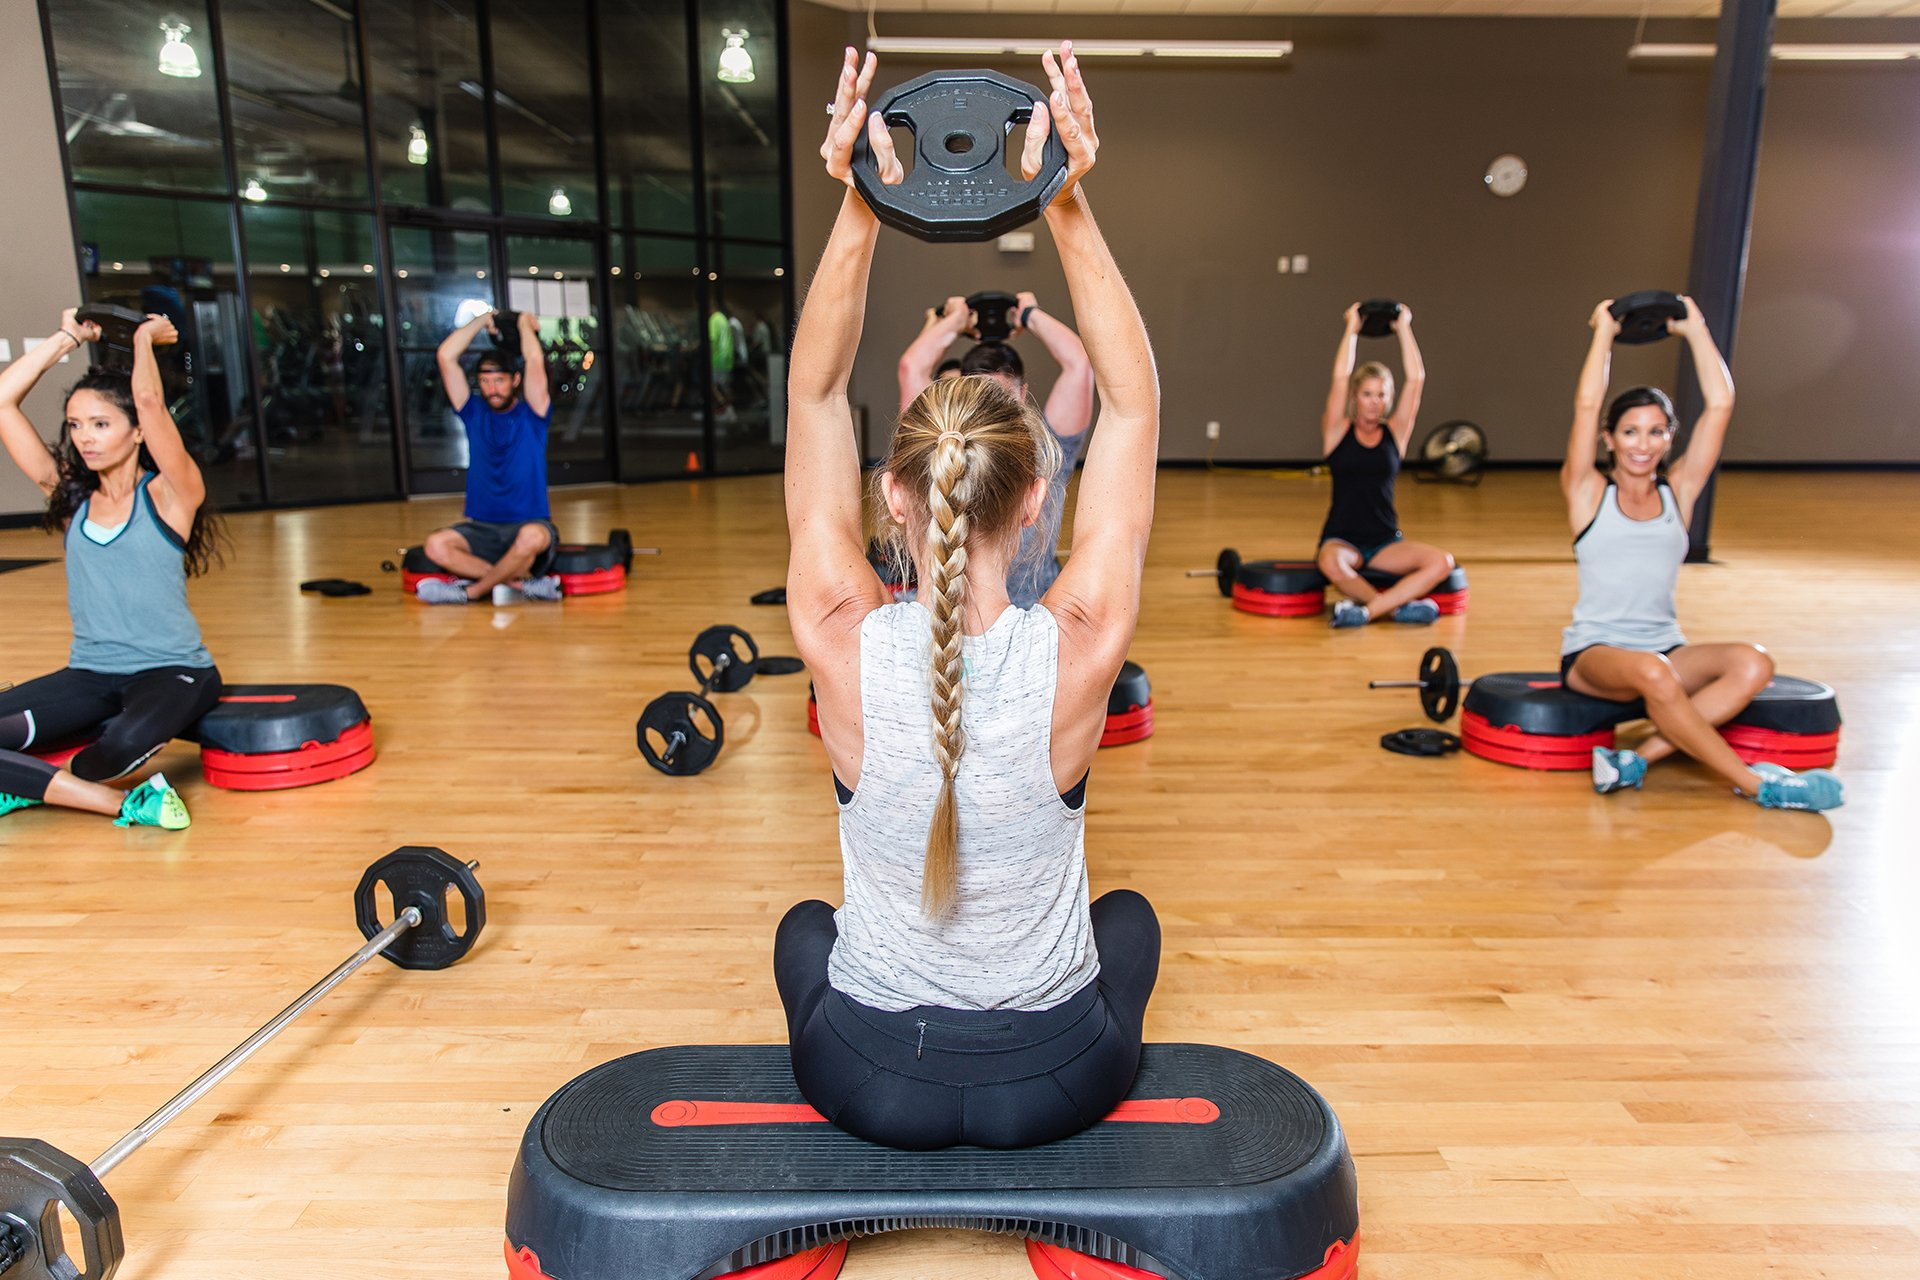 Studio Fitness class at O2 Fitness